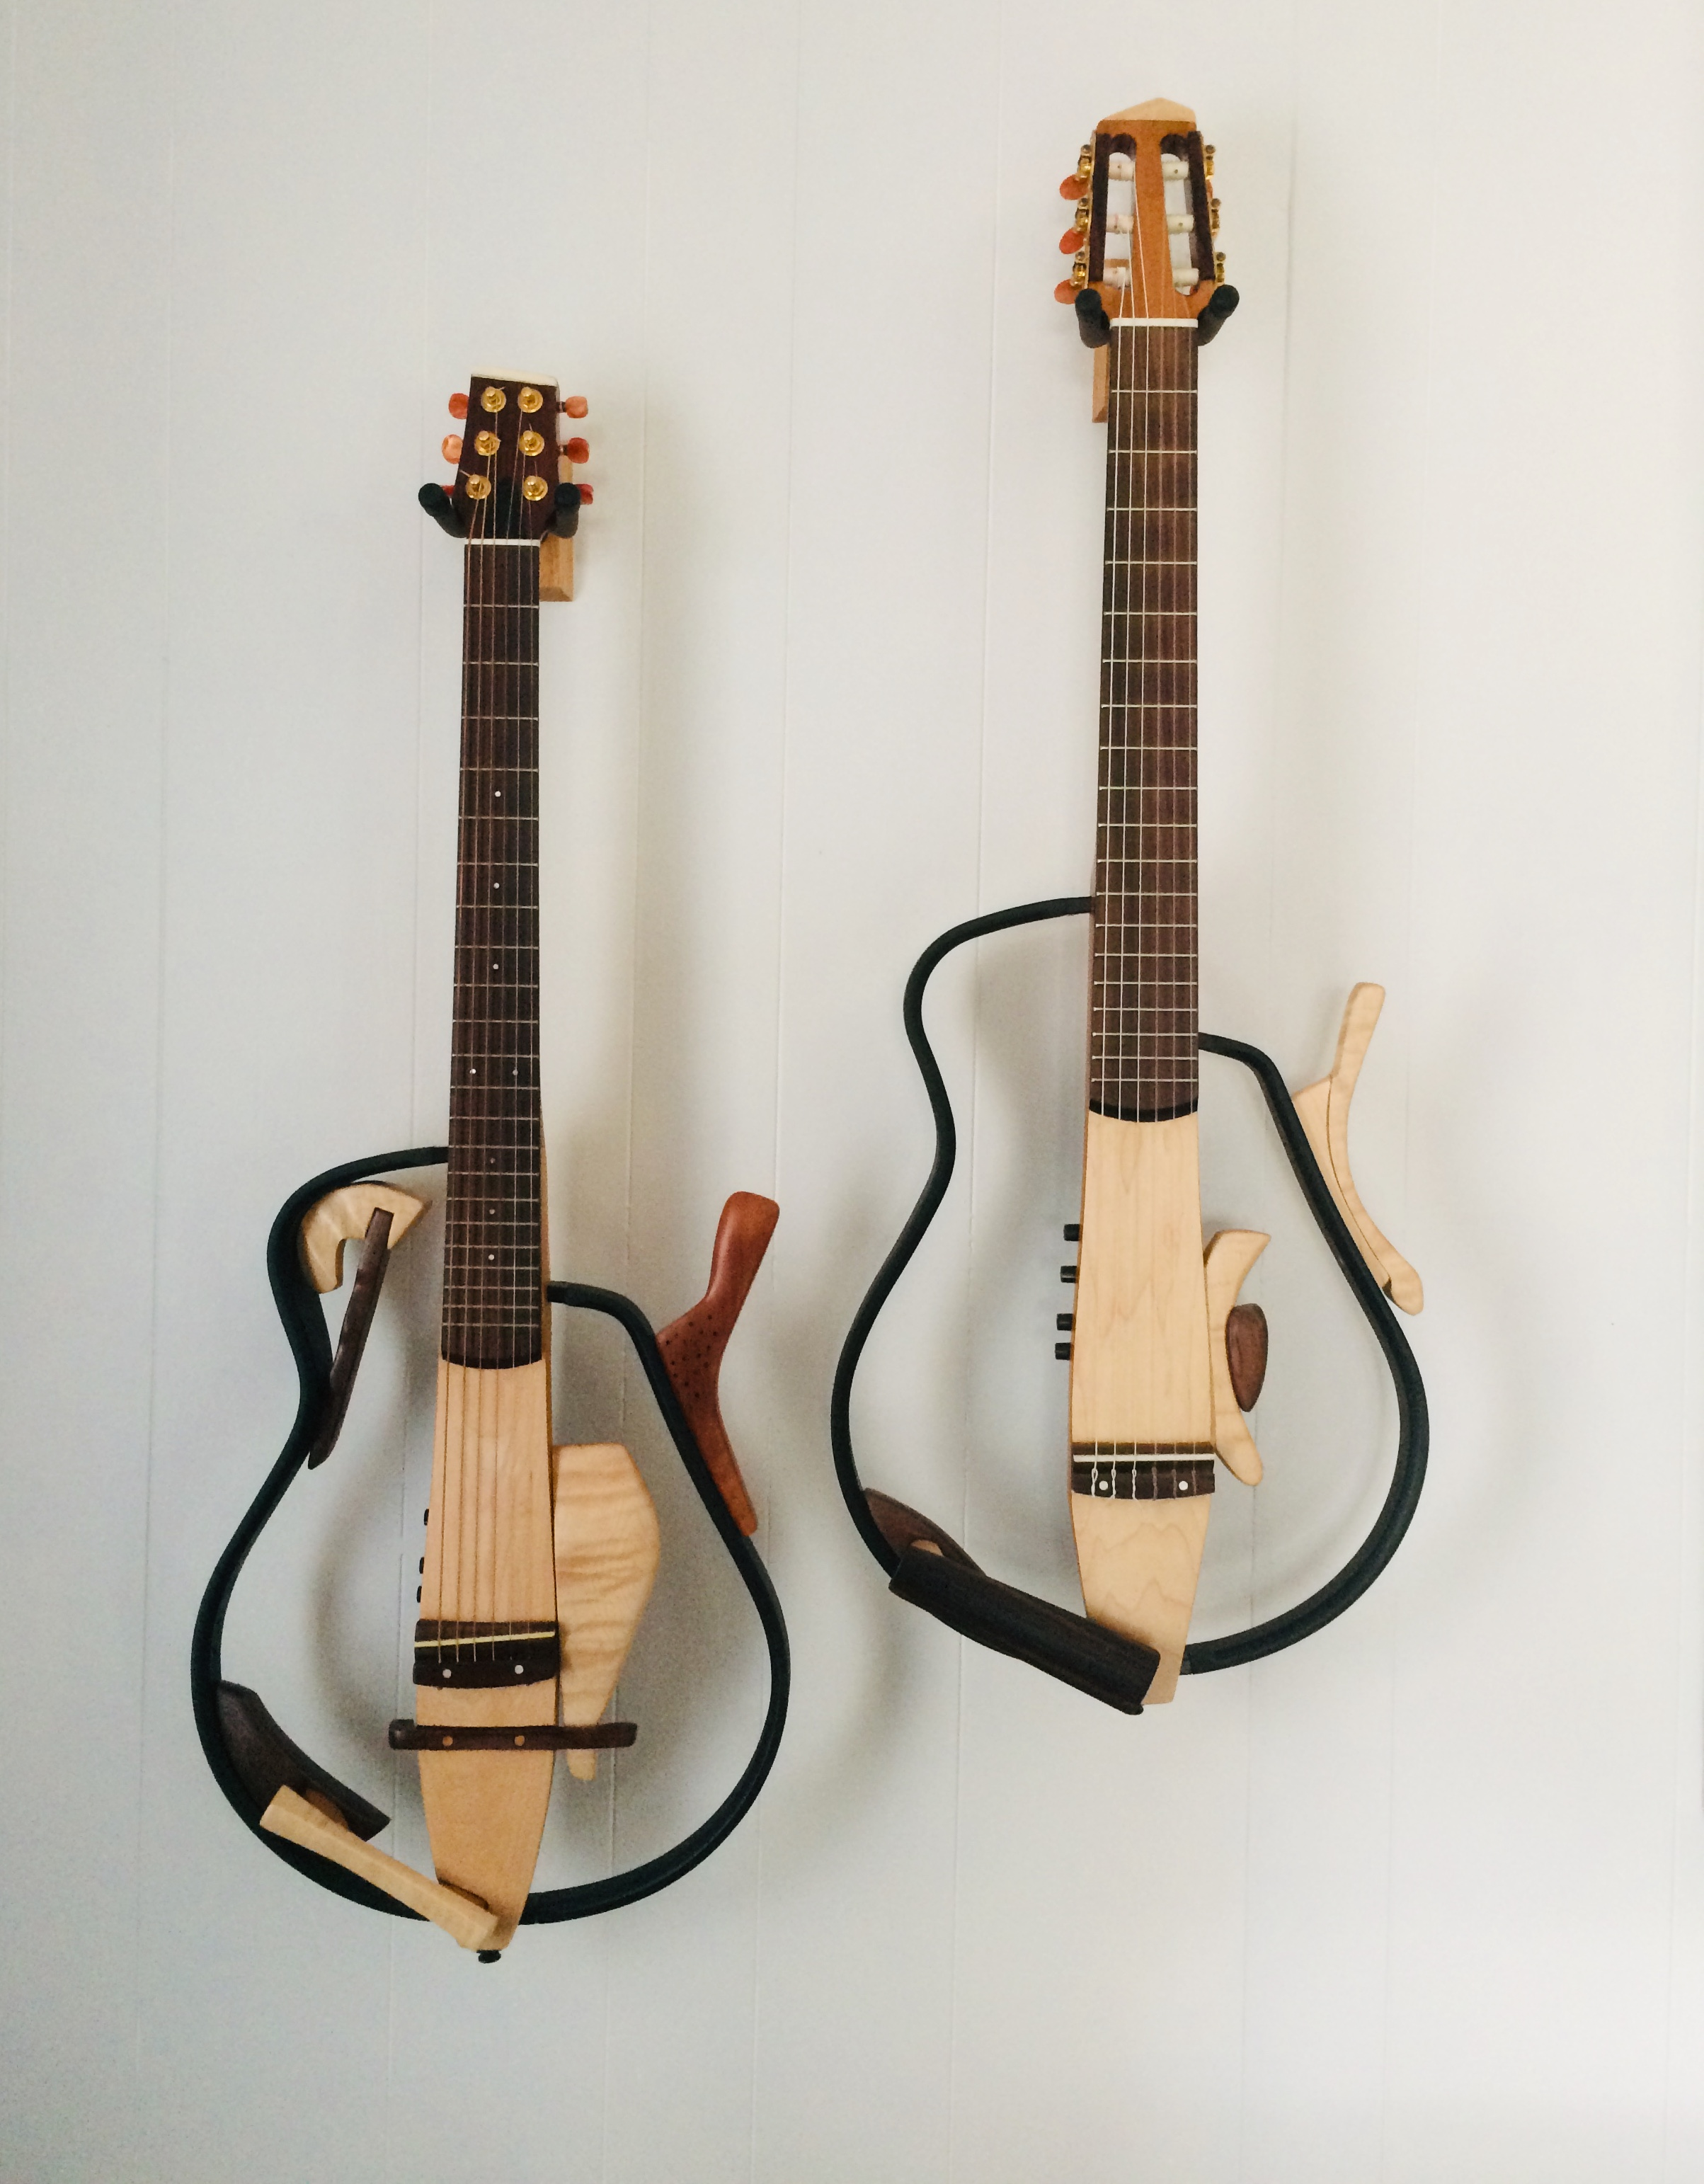 Two redesigned Yamaha Silent guitars……$1800.00 each